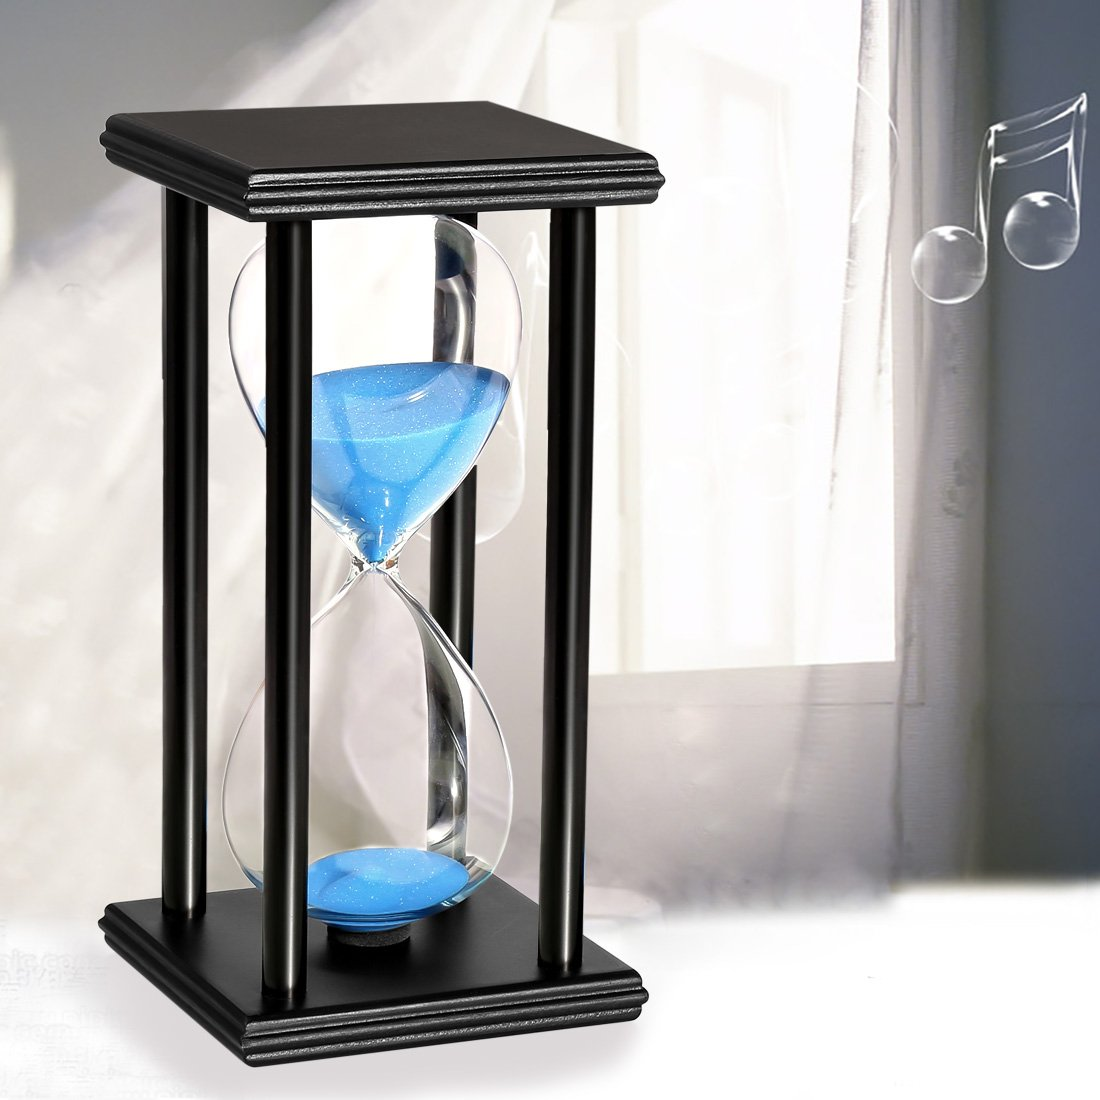 BOJIN 20 Minute Hourglass Sand Timer Wooden Black Stand Hourglass Clock for Office Kitchen Decor Home - Blue Sand by BOJIN (Image #4)